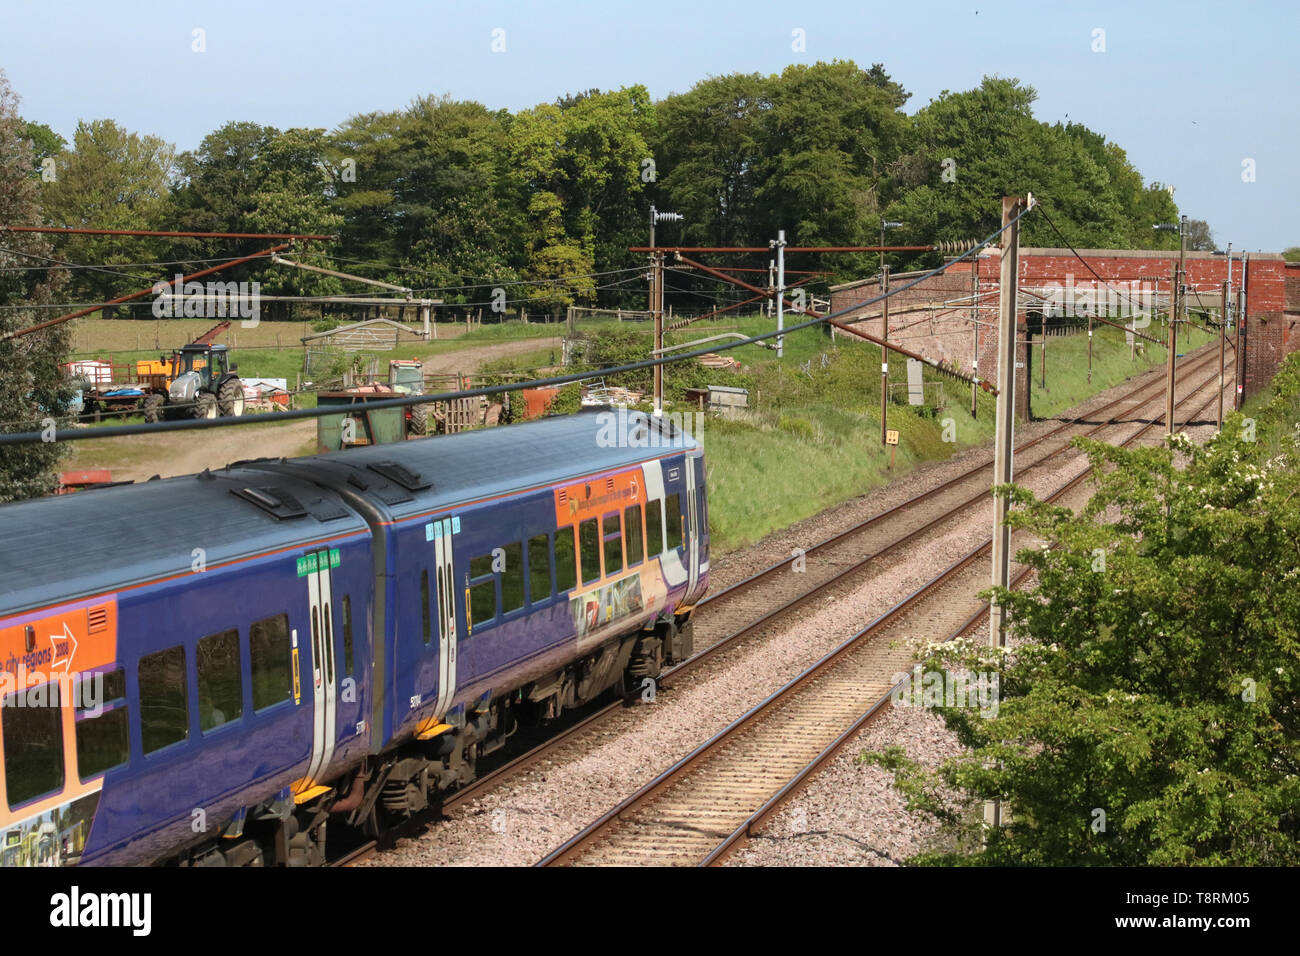 Class 158 two-car express sprinter diesel multiple unit passenger train in Northern livery on WCML near Garstang in Lancashire on 14th May 2019. - Stock Image